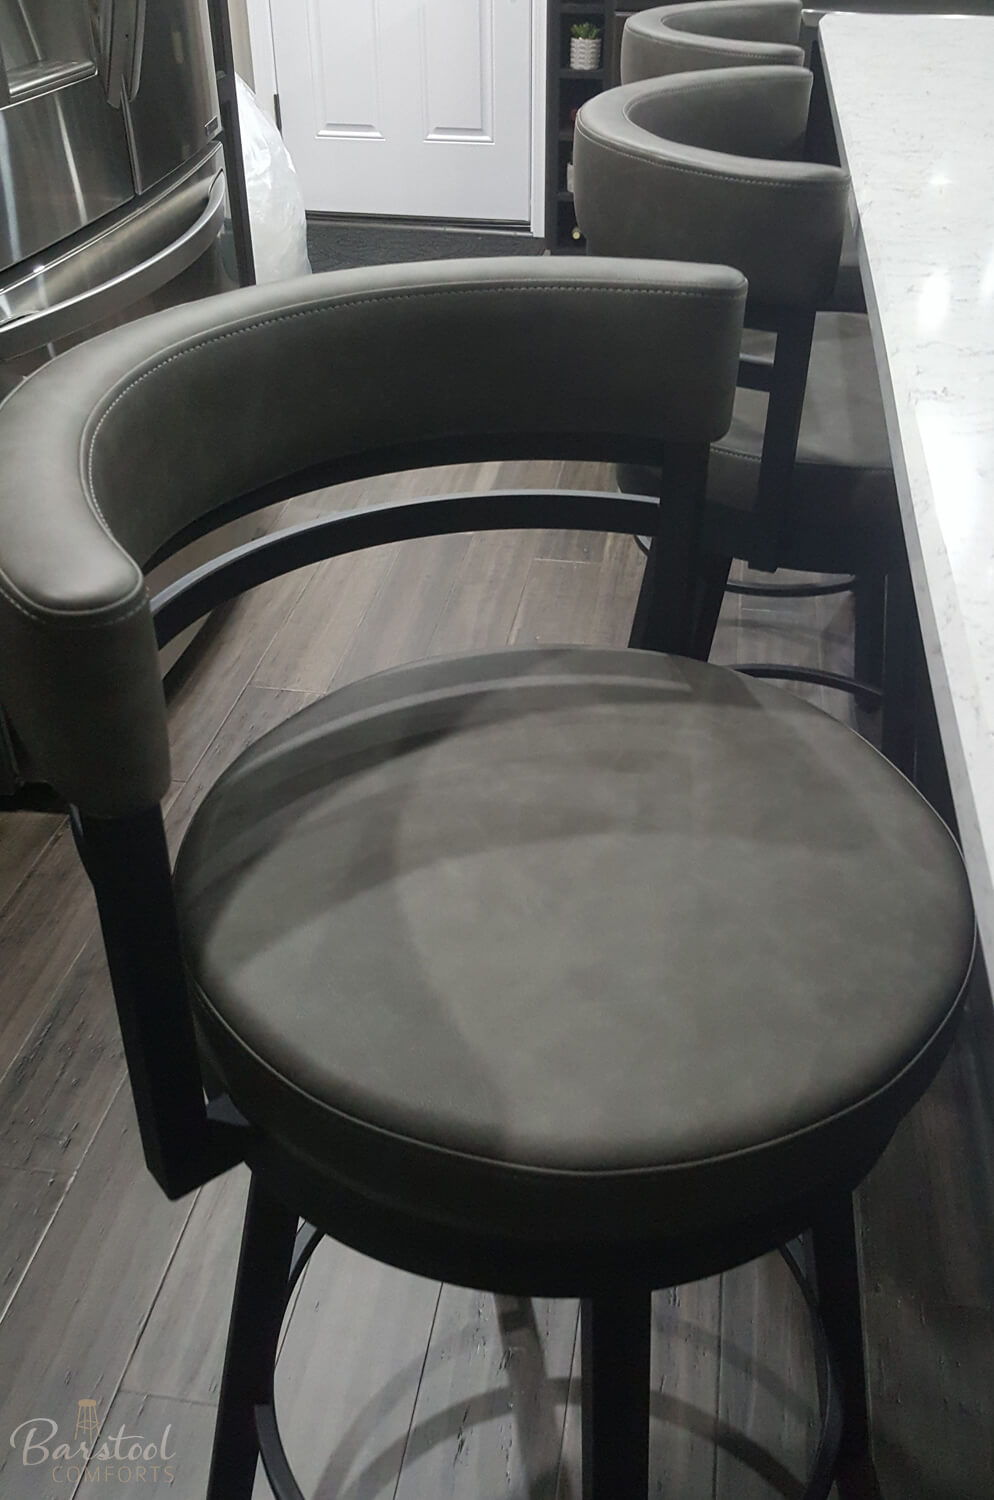 24 Inch Chair